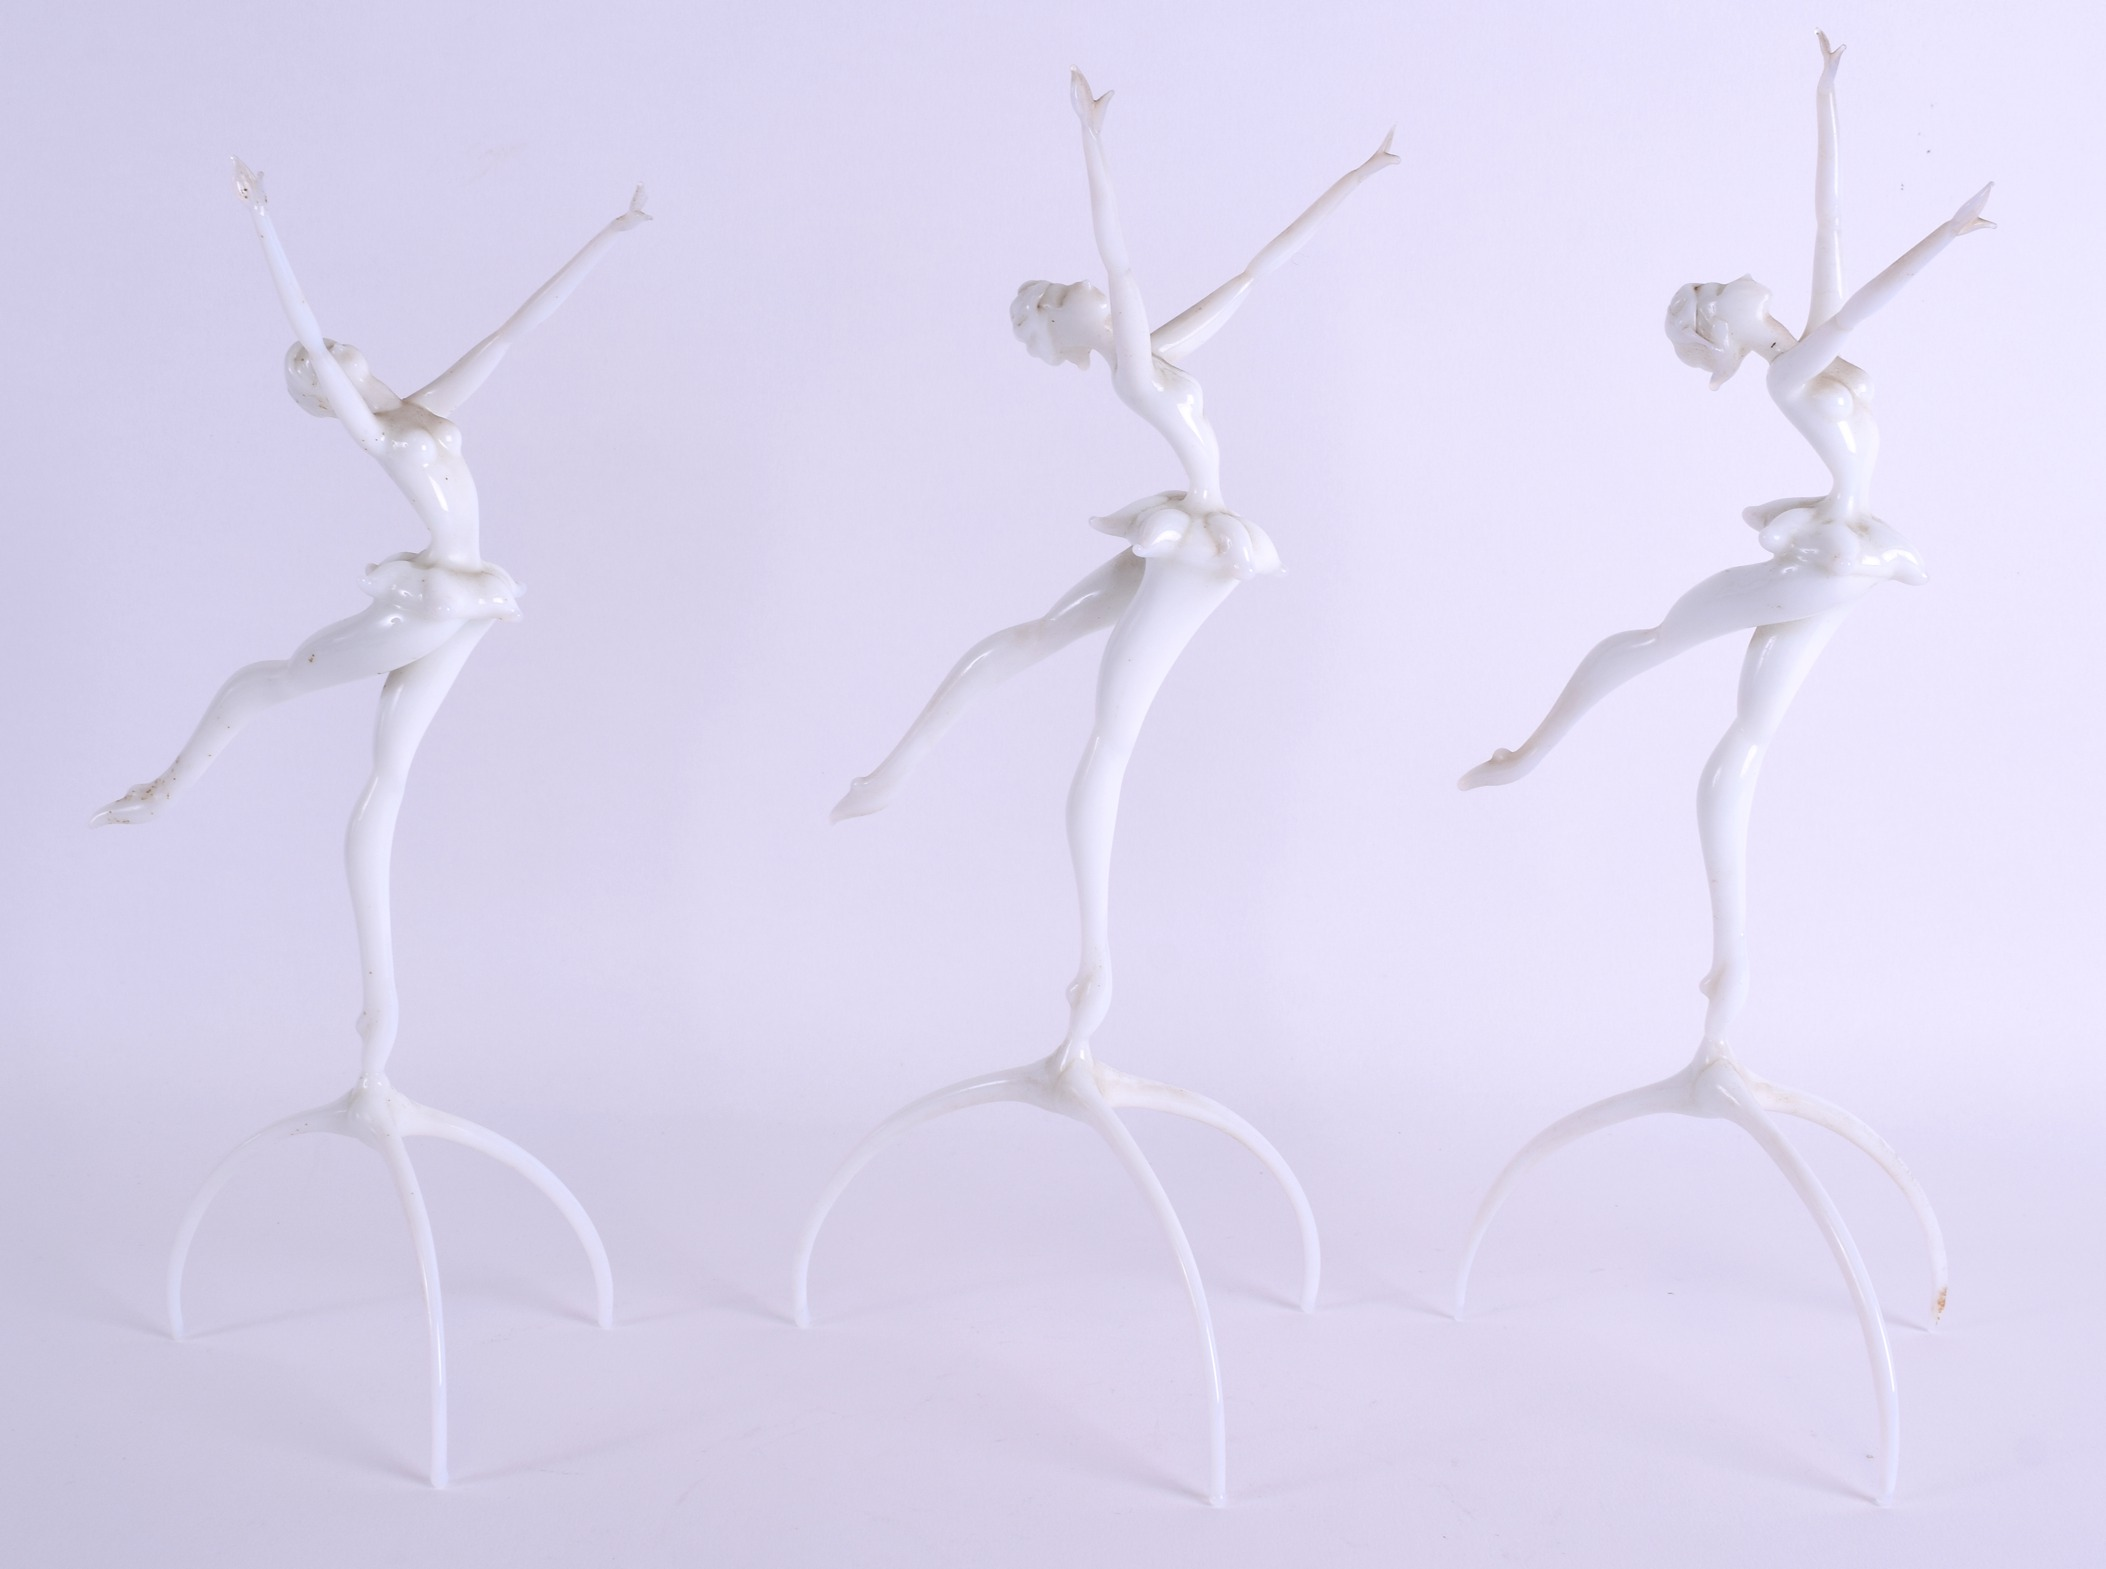 Lot 16 - A RARE SET OF THREE GERMANIC HUNGARIAN GLASS DANCERS by Istvan Komaromy (1910-1975), modelled as